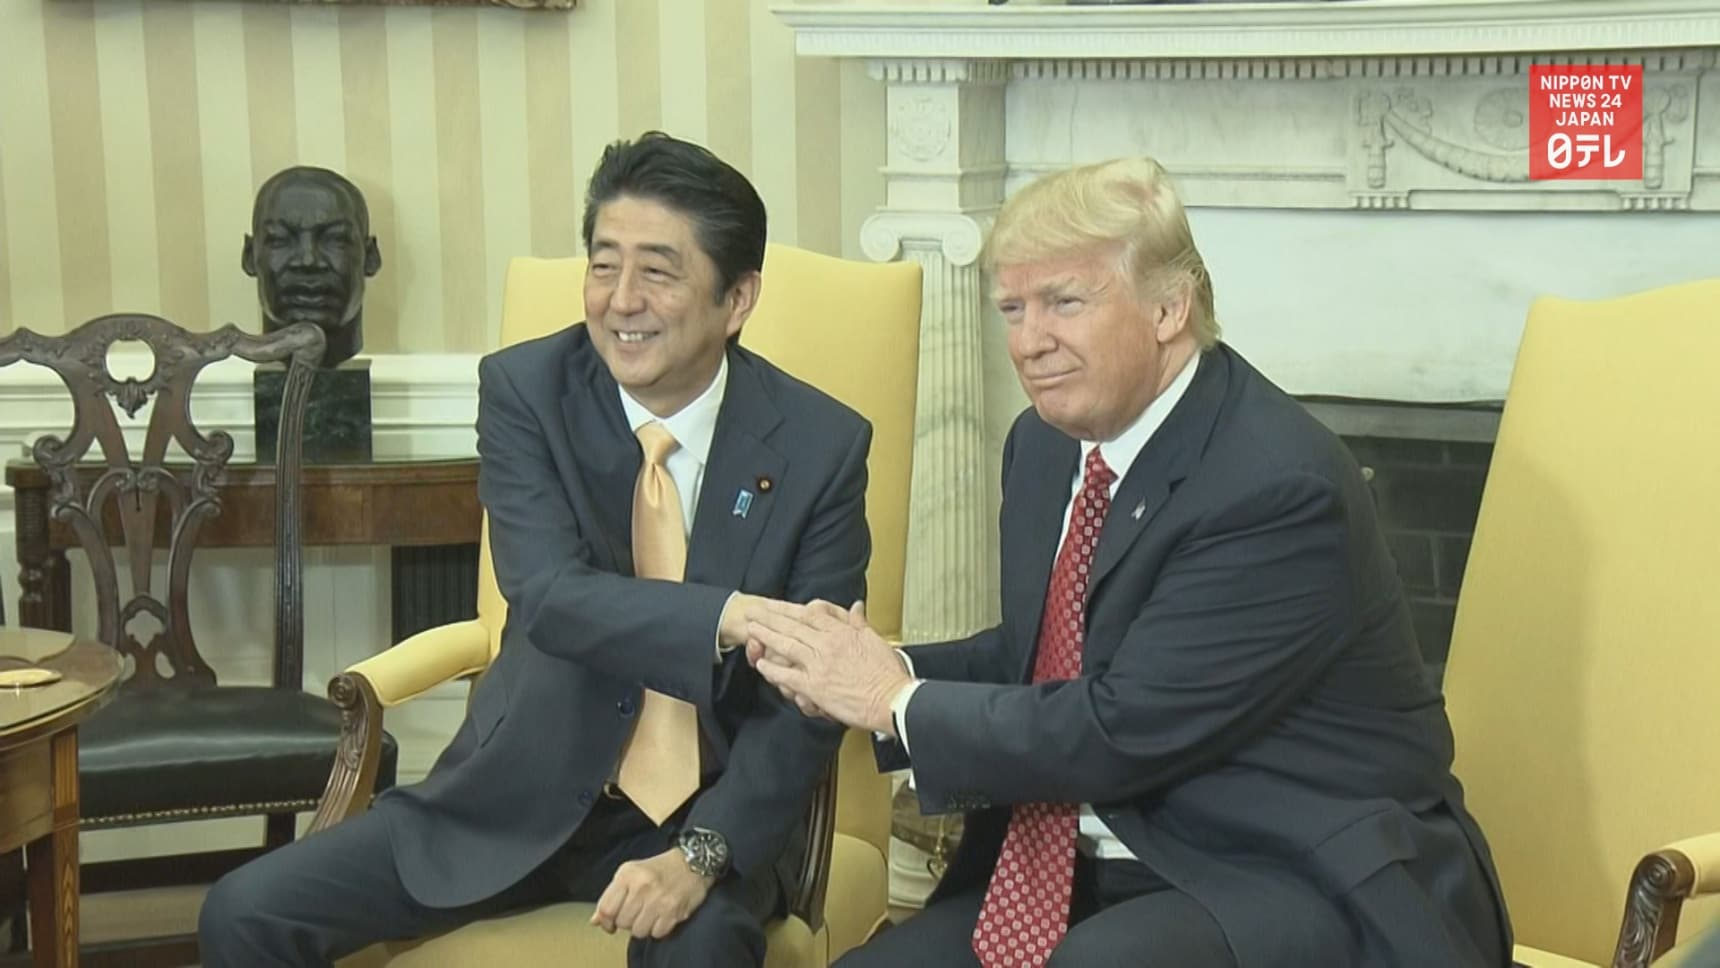 A Quick Look at Abe's Diplomatic Prowess